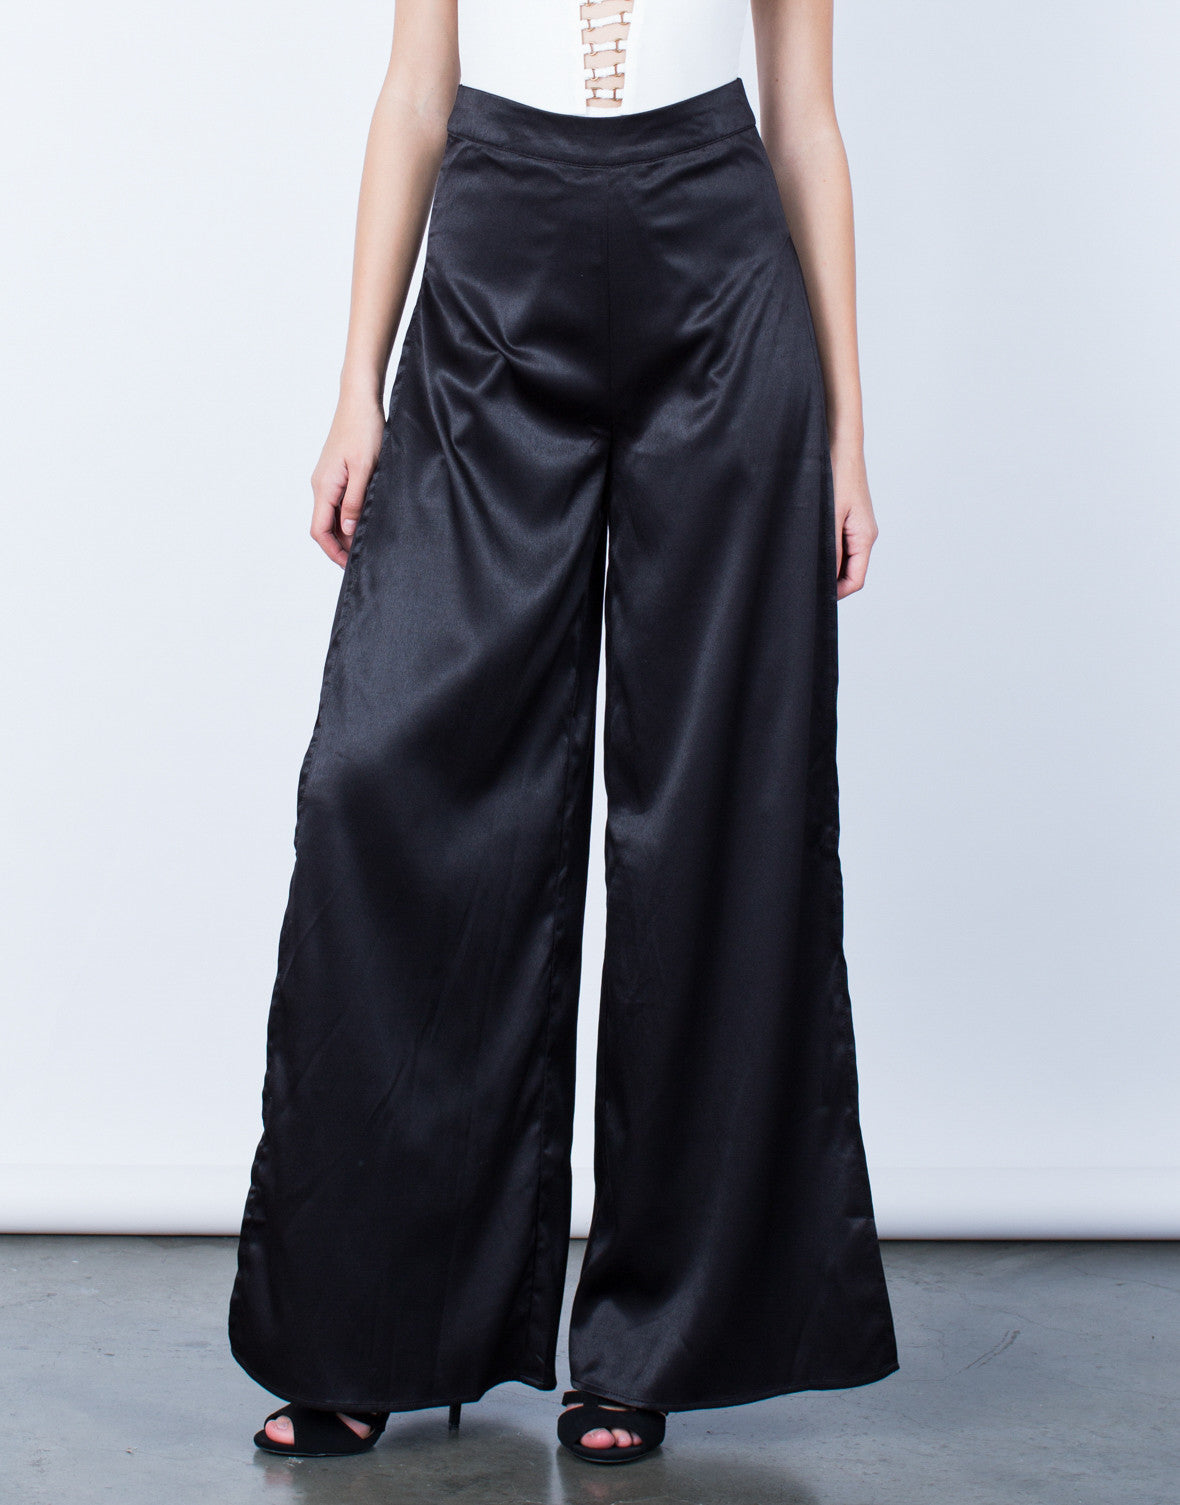 Make a Statement Satin Pants